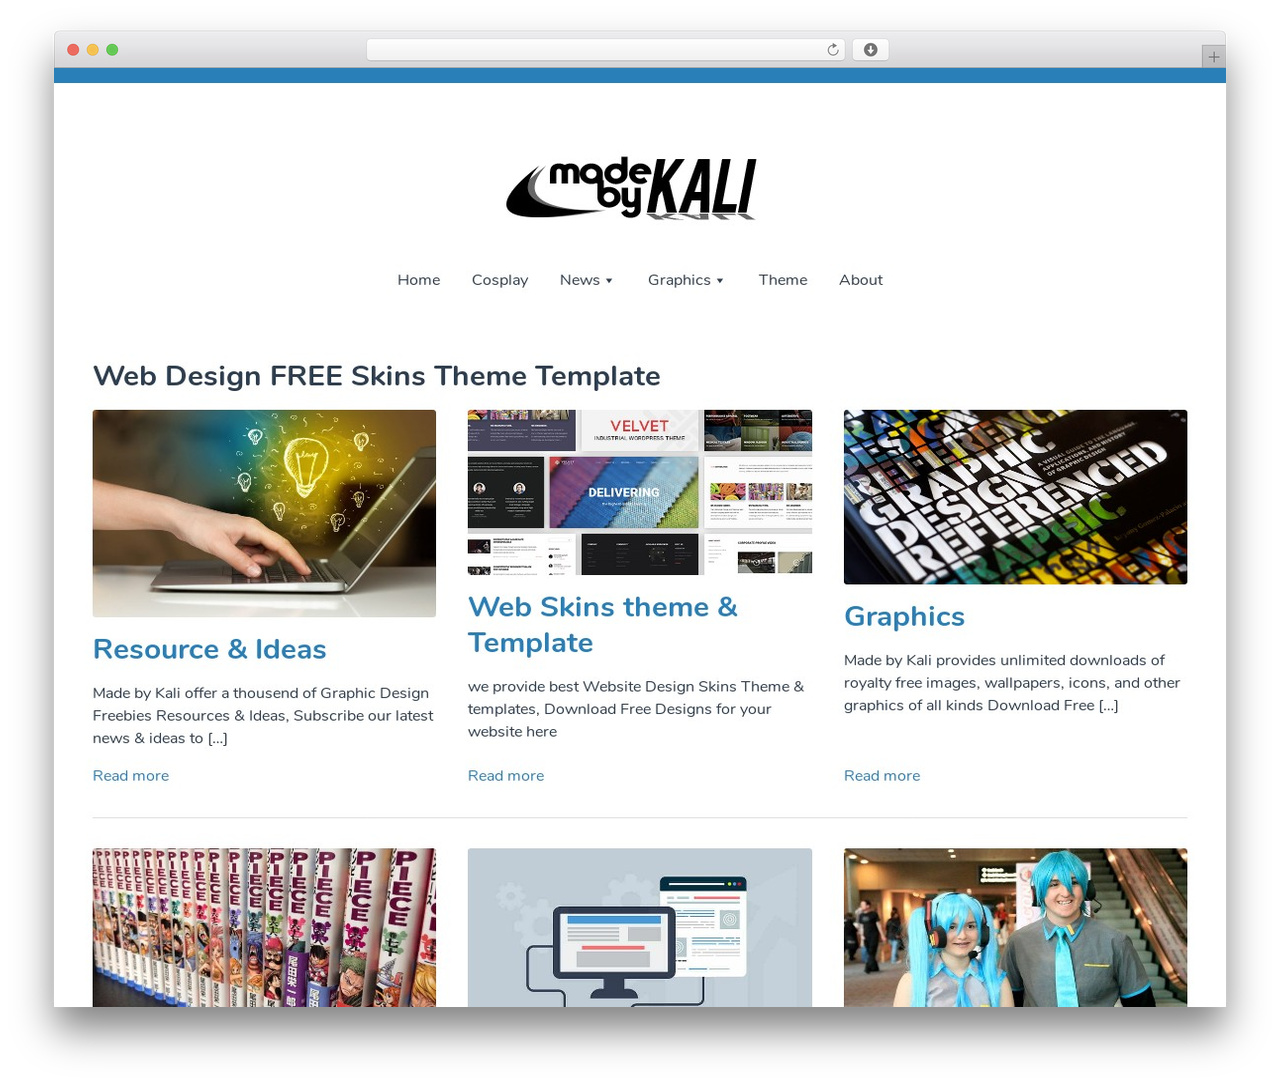 Singularity best WordPress theme - made-by-kali.com